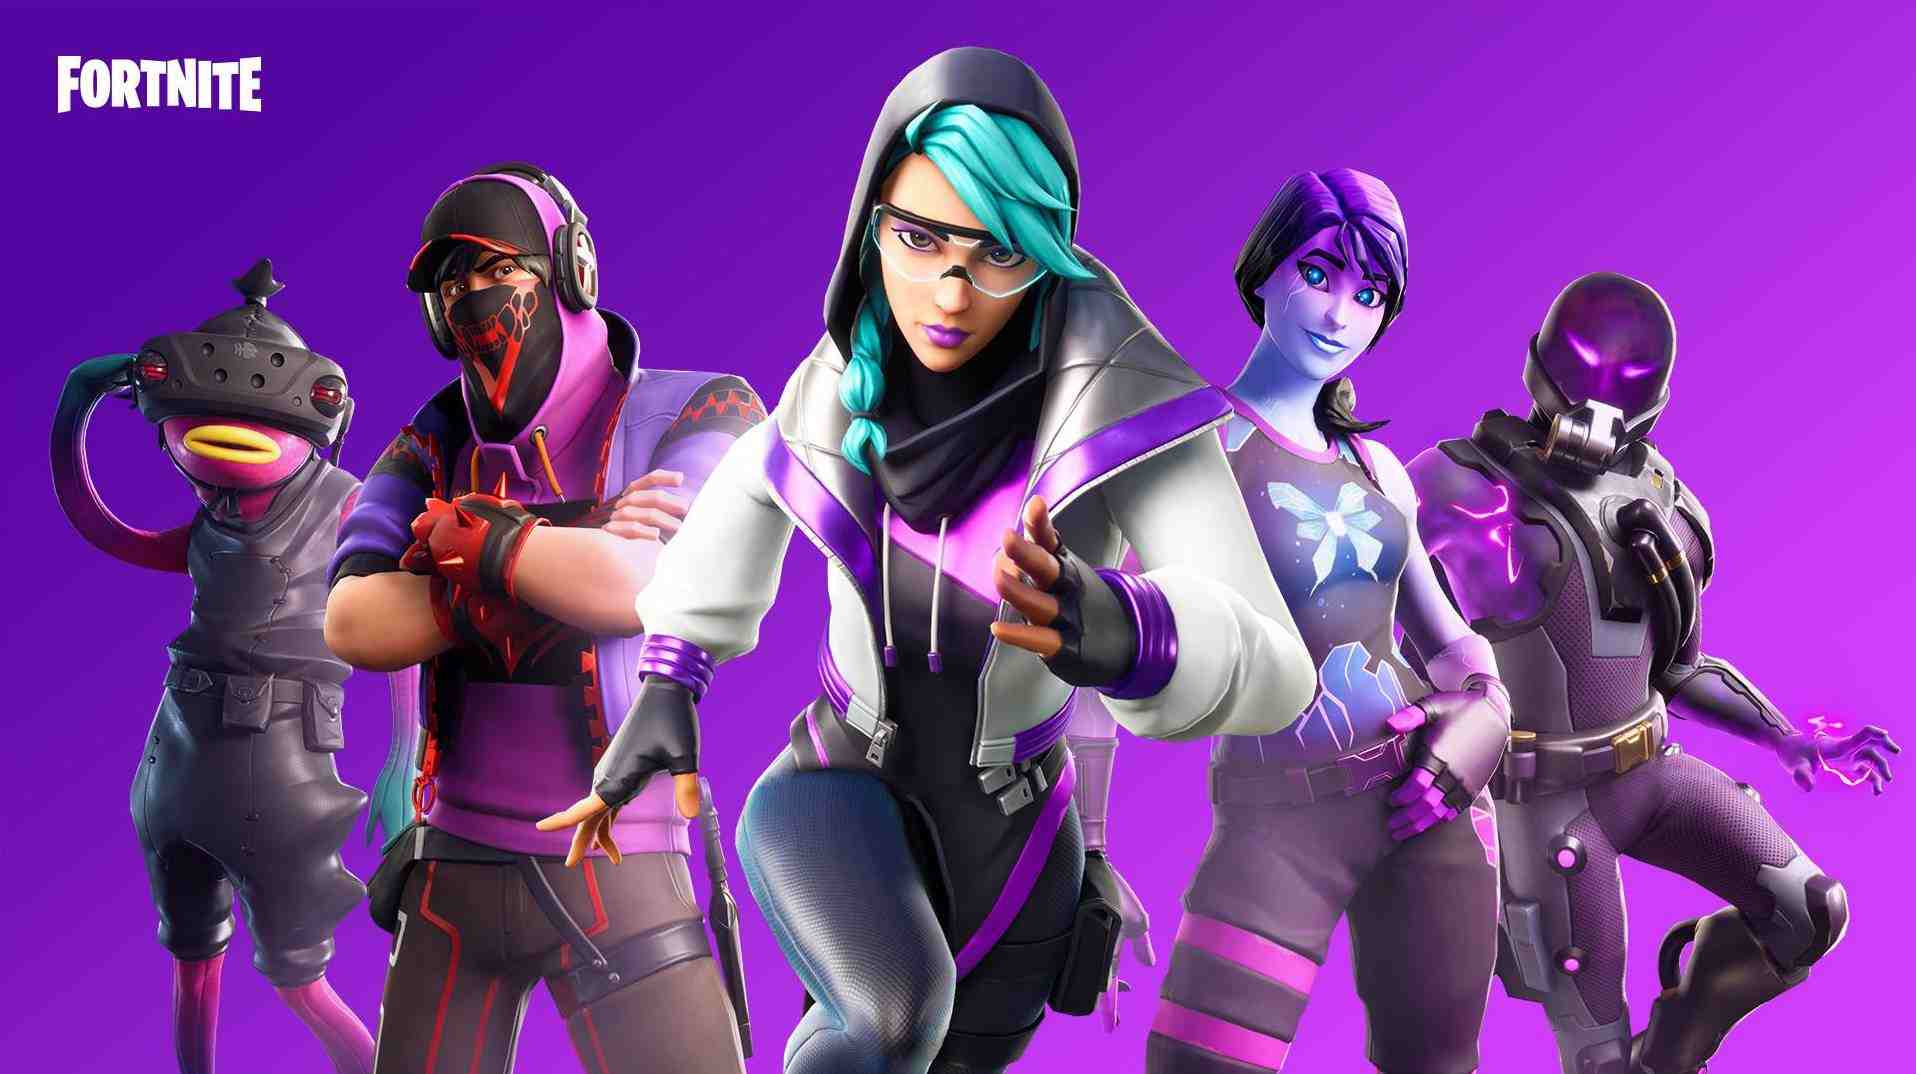 How To Install Fortnite On Android Device Not Support